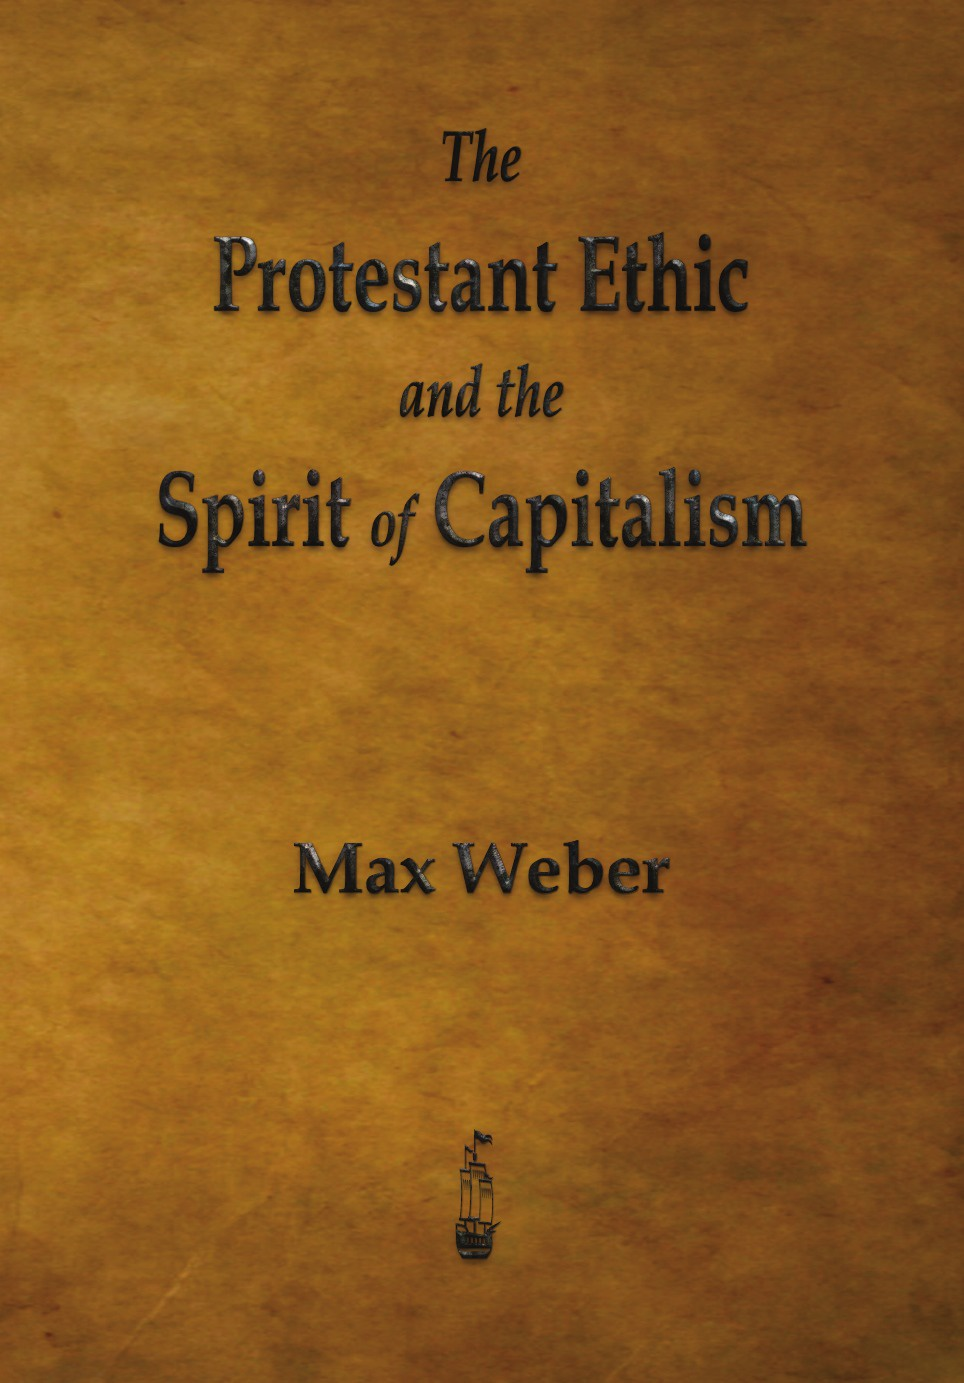 лучшая цена Max Weber The Protestant Ethic and the Spirit of Capitalism